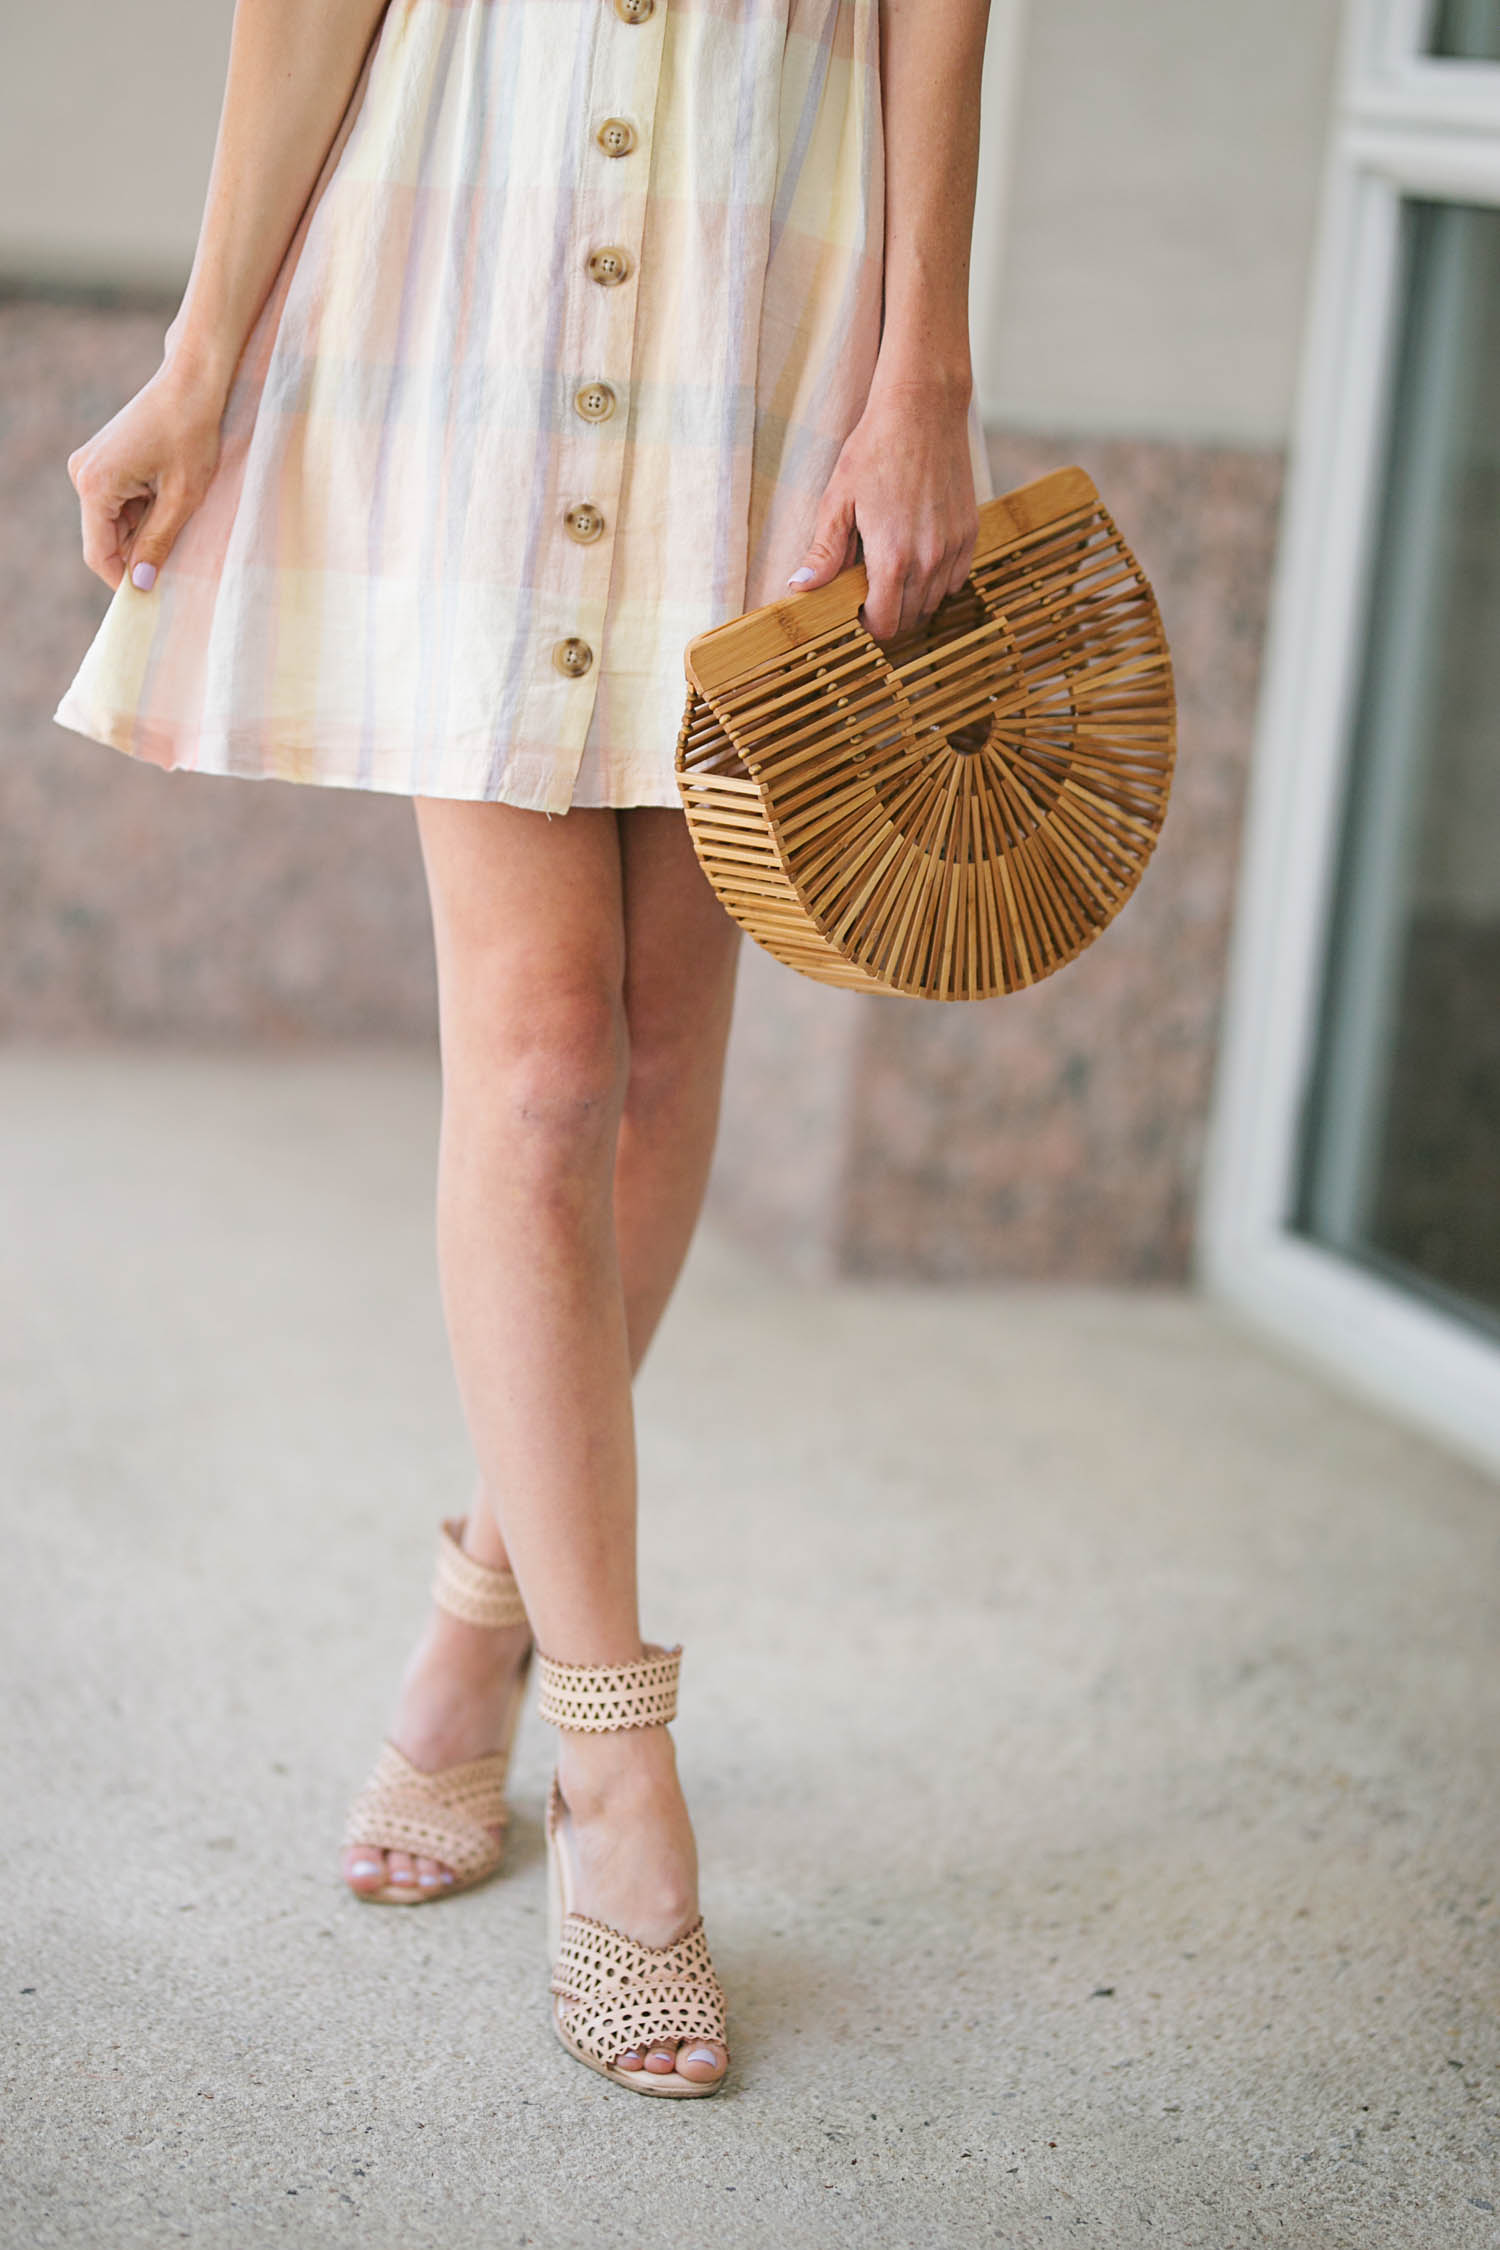 Plaid Dress, Urban Outffiters, rewardStyle Conference, Statement Earrings, Baublebar, Cult Gaia, Gucci Sunglasses